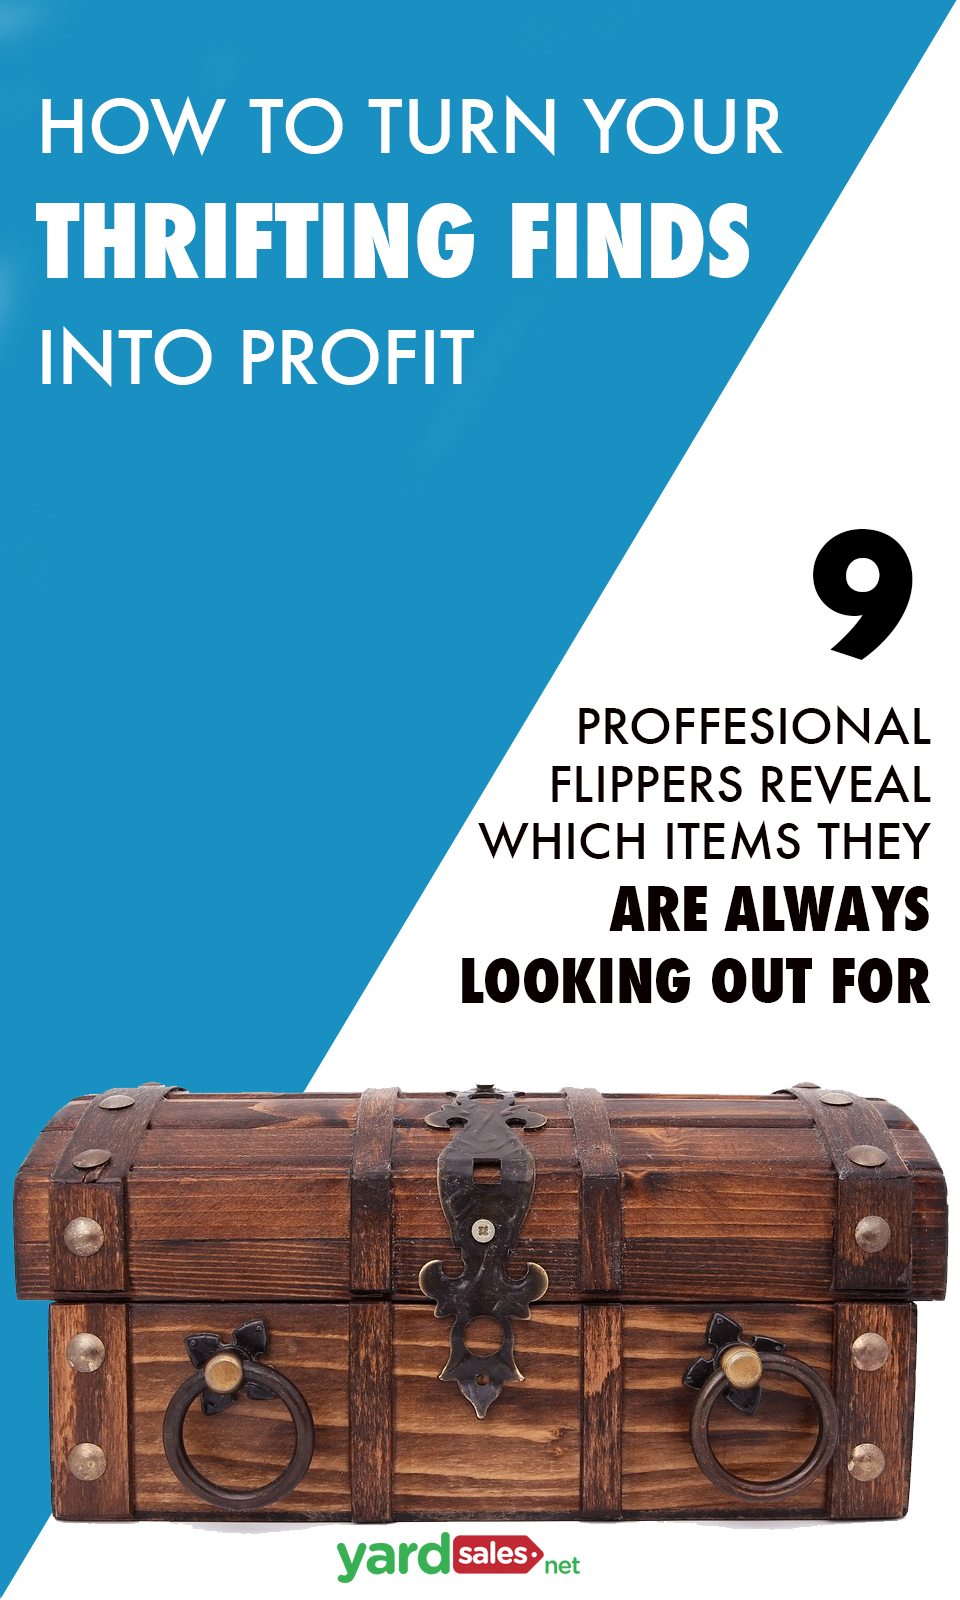 What Should you Look for to Resell? 9 Professional Flippers Reveal their Top Items to Flip!